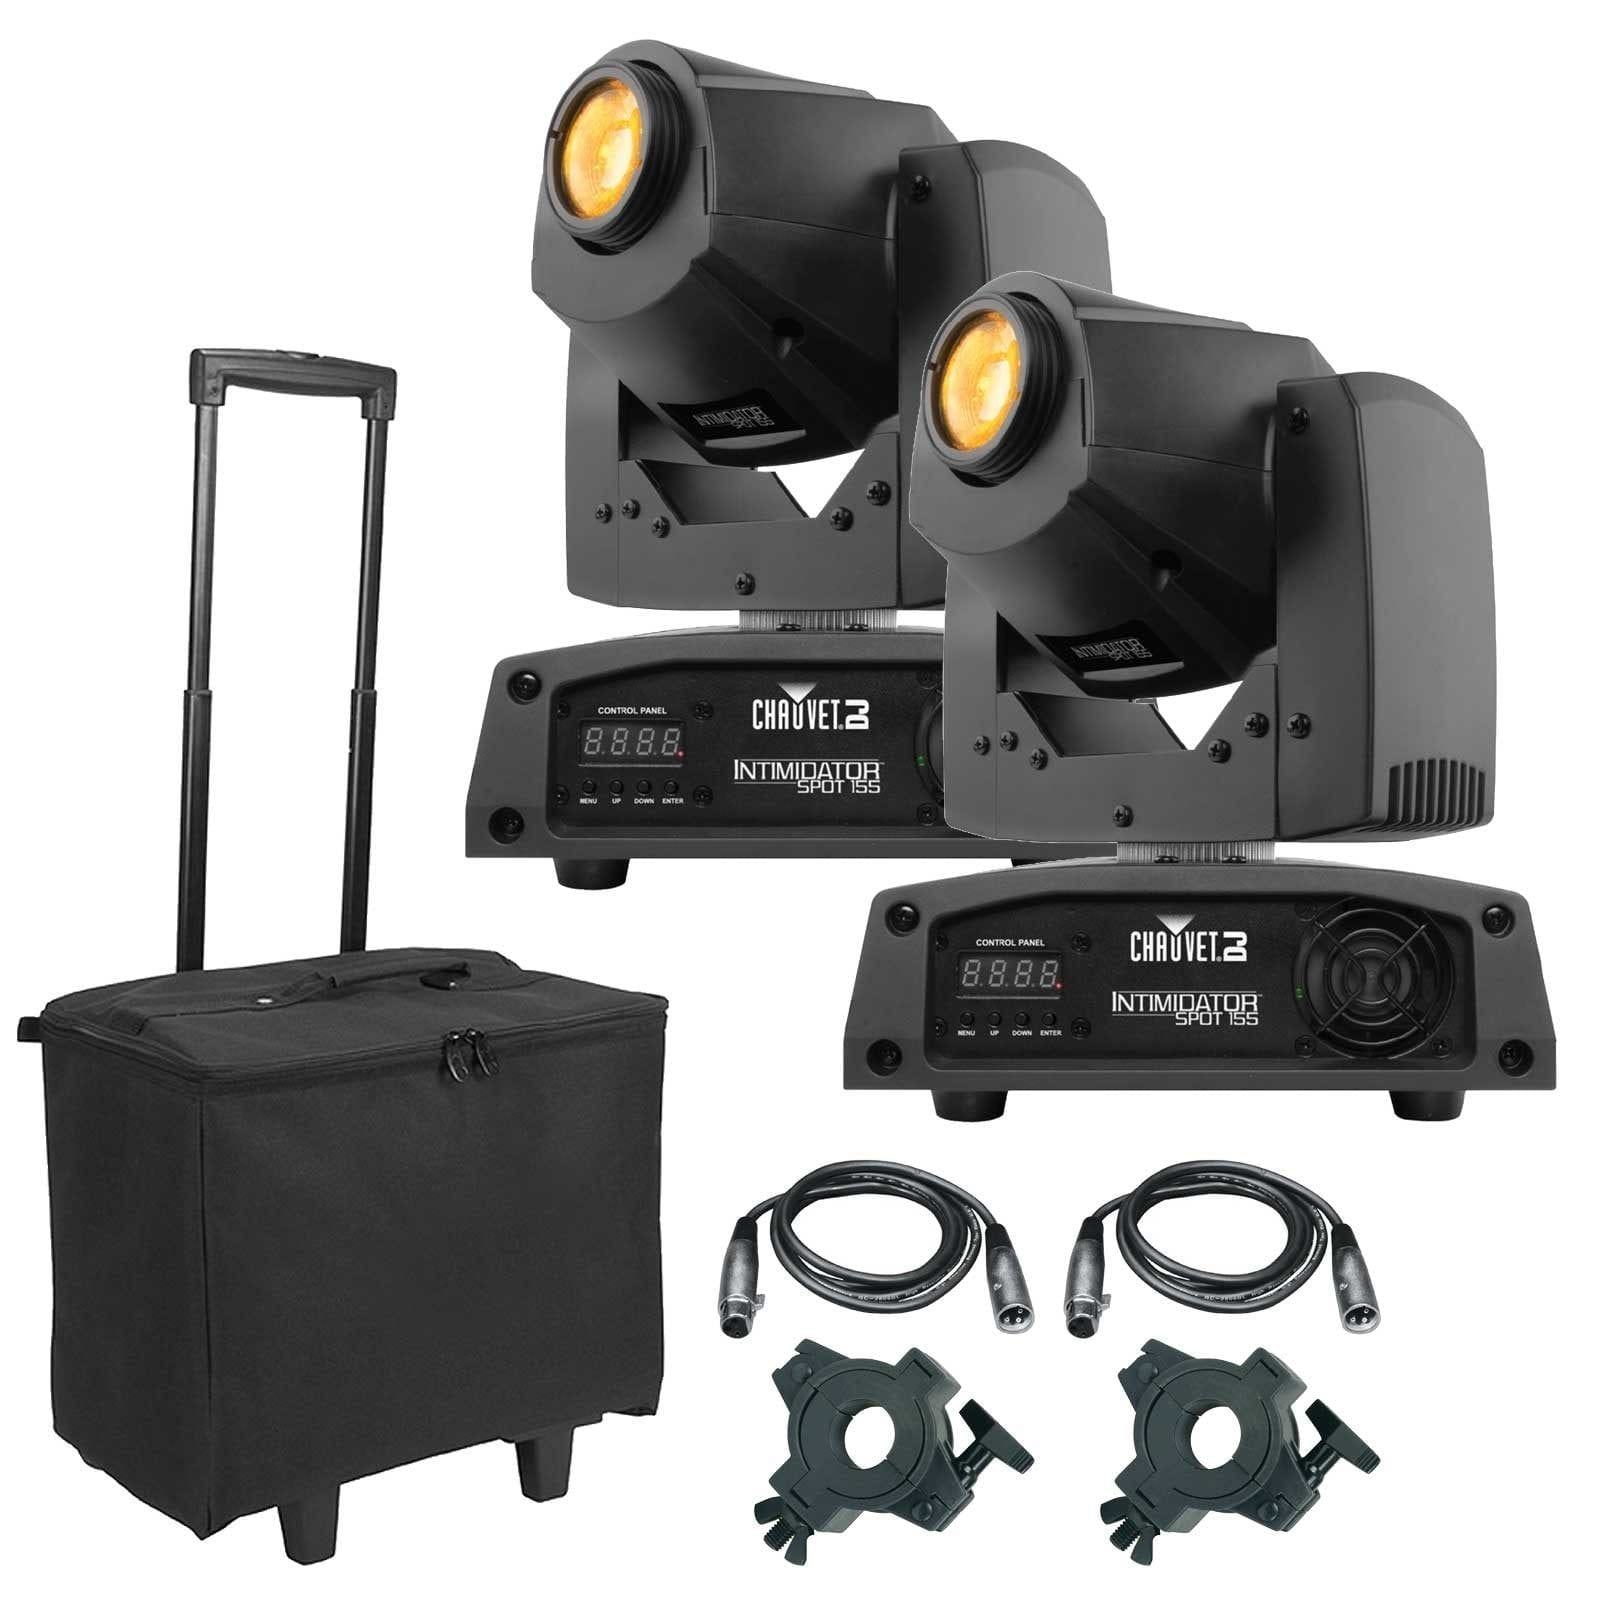 2-chauvet-dj-intimidator-spot-155-compact-led-moving-heads-package-644